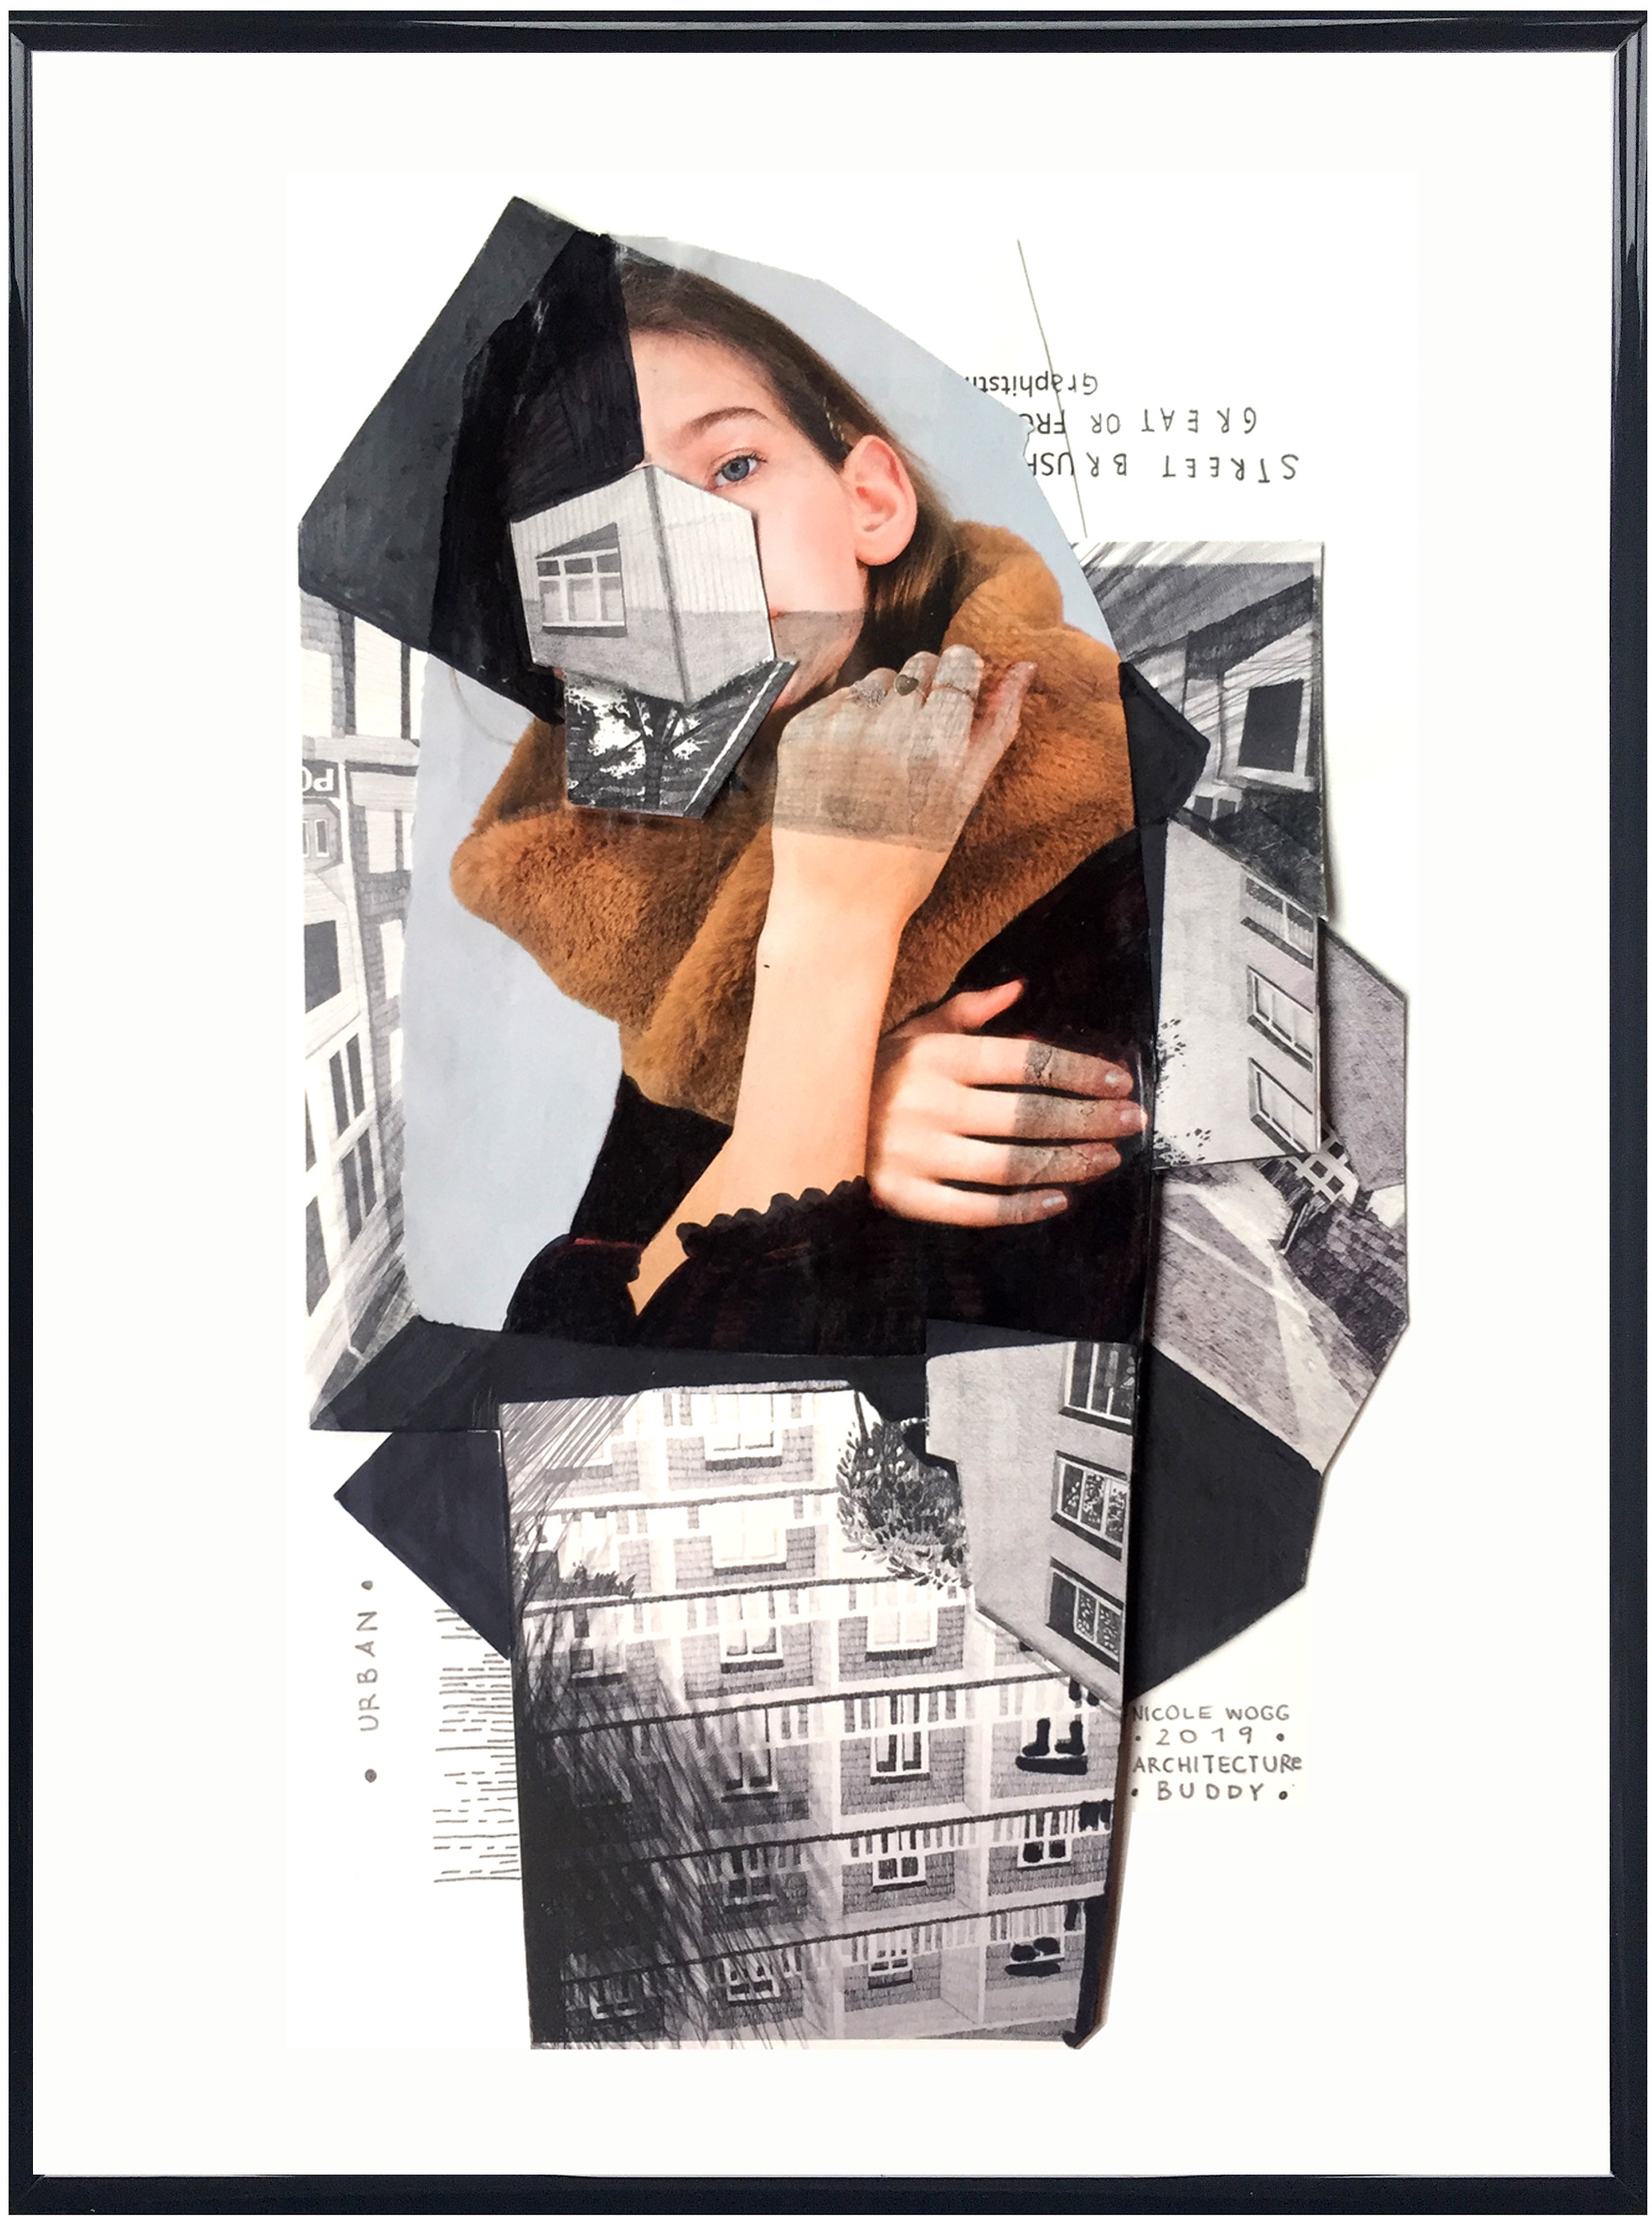 4. Architecture Buddy urban life , collage, 30x21cm, 2019